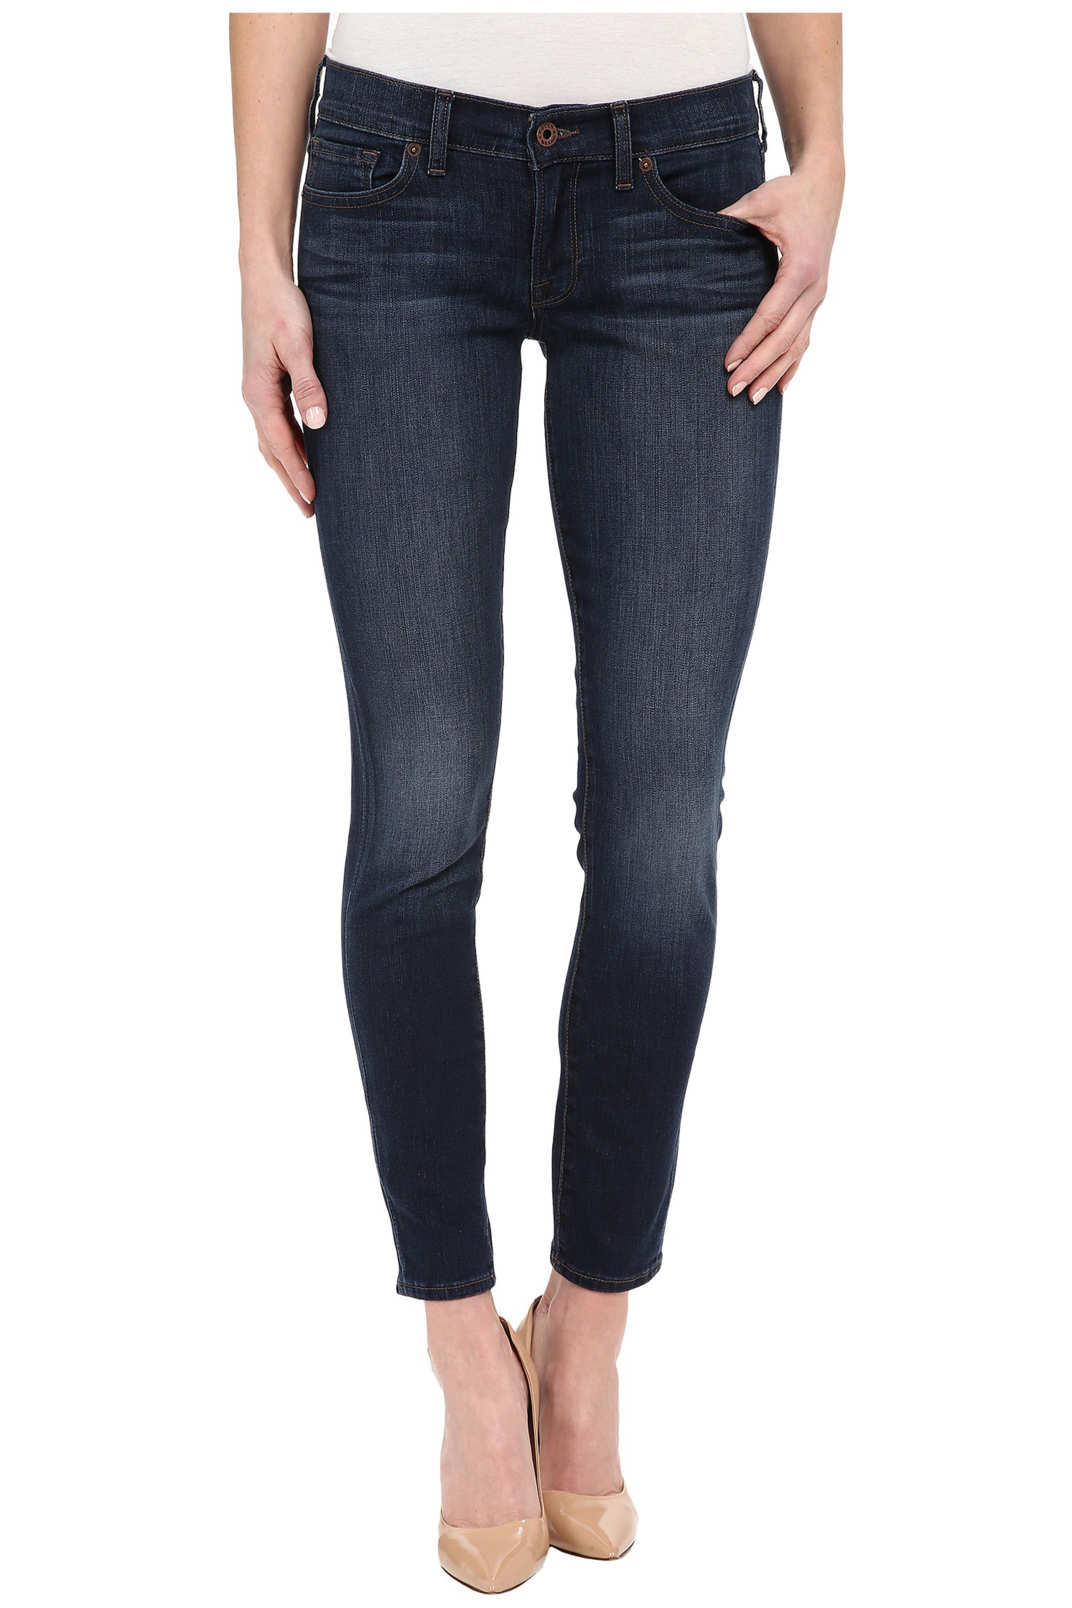 About women's jeans – fashionarrow.com